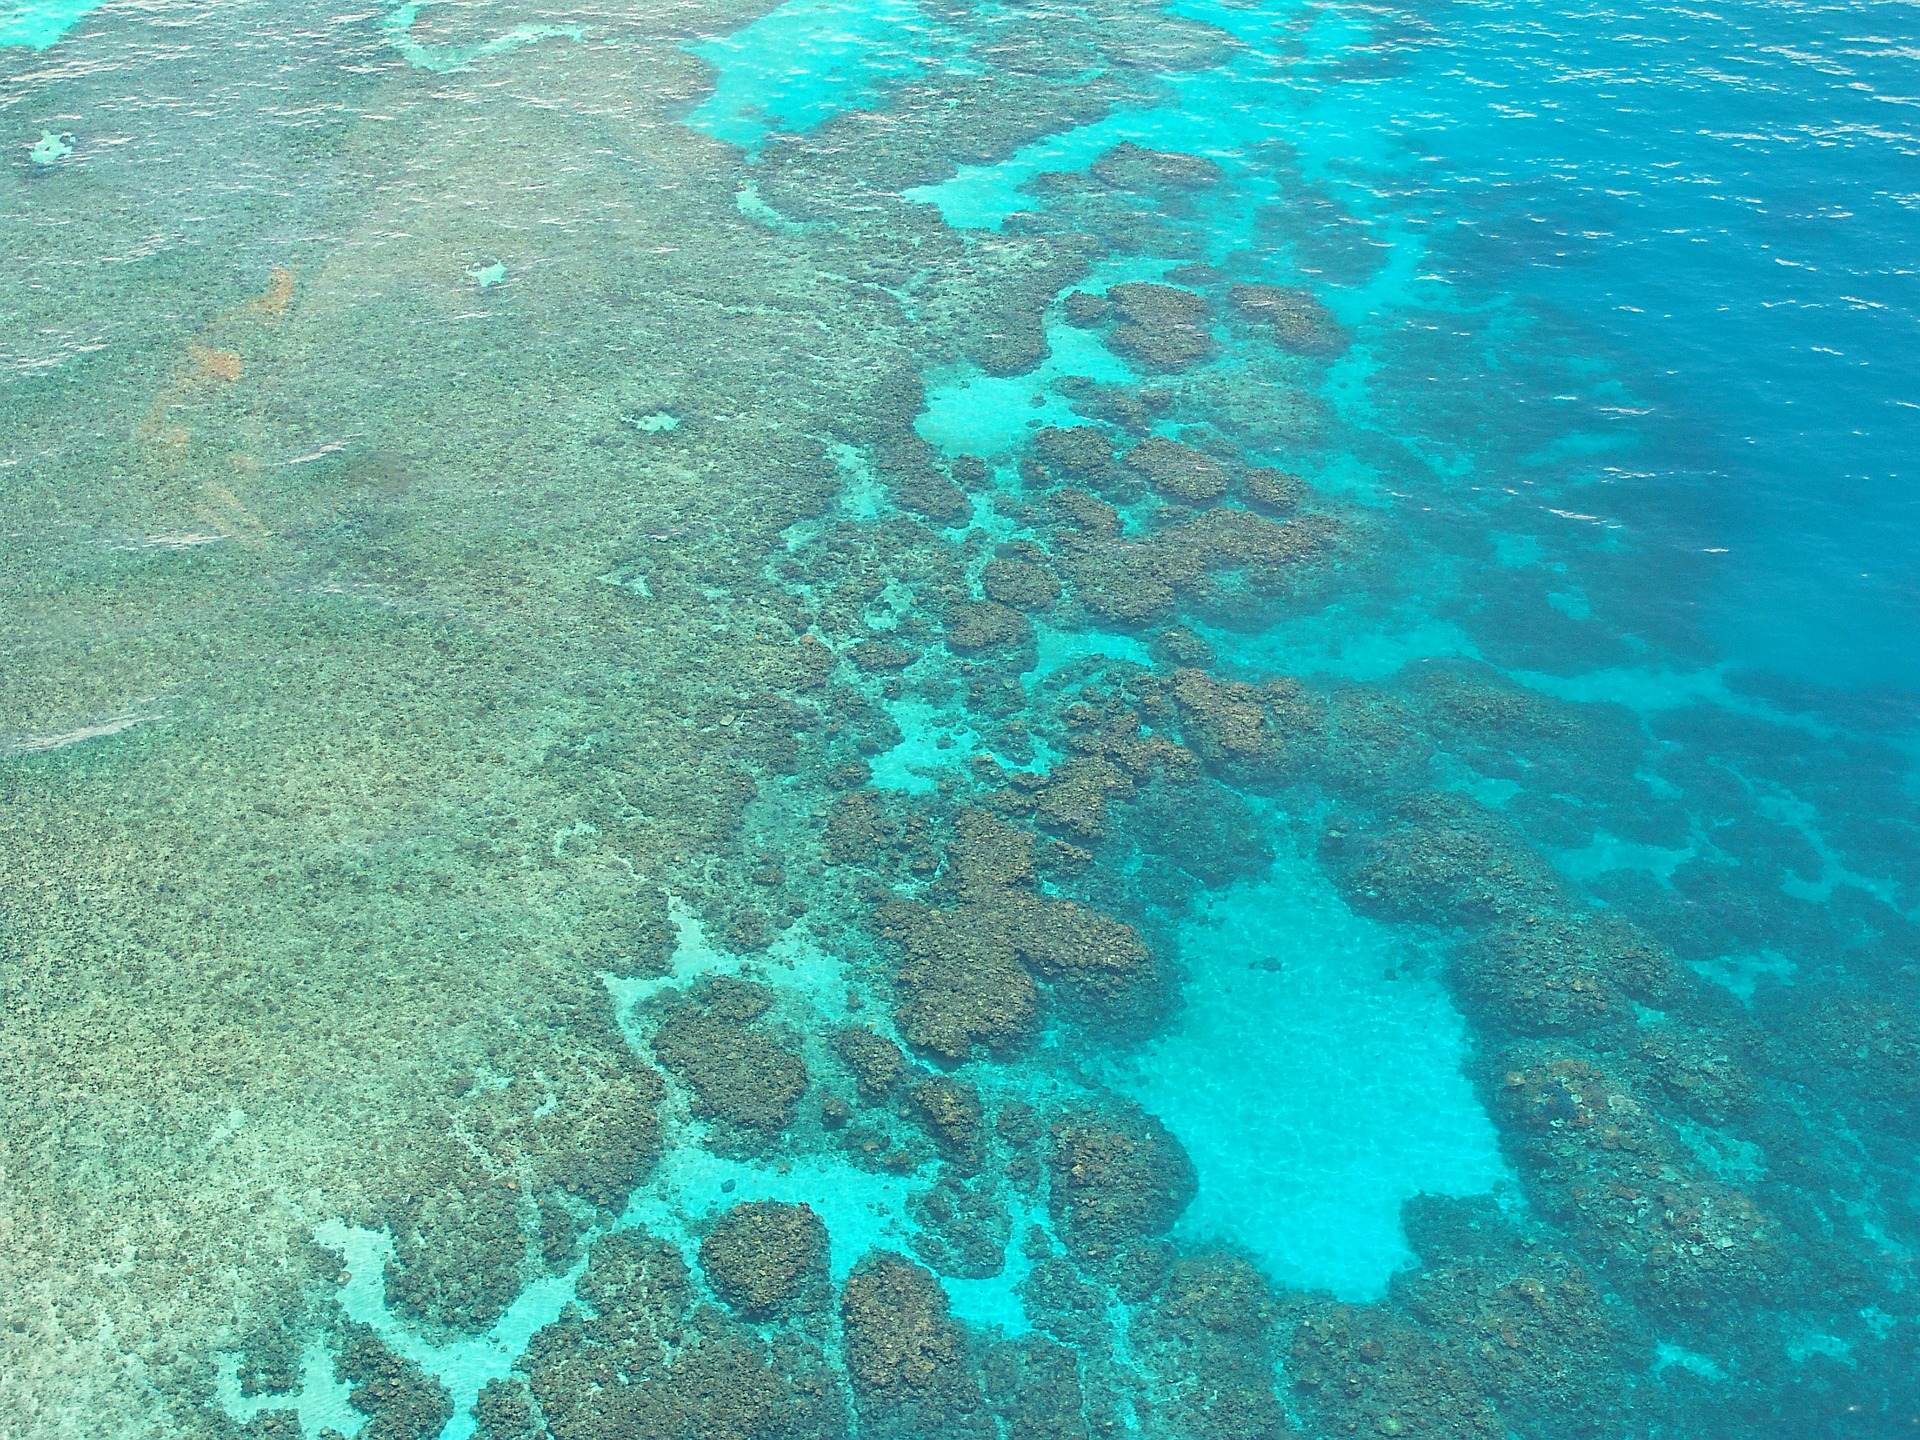 Part of the Great Barrier Reef in blue-green waters